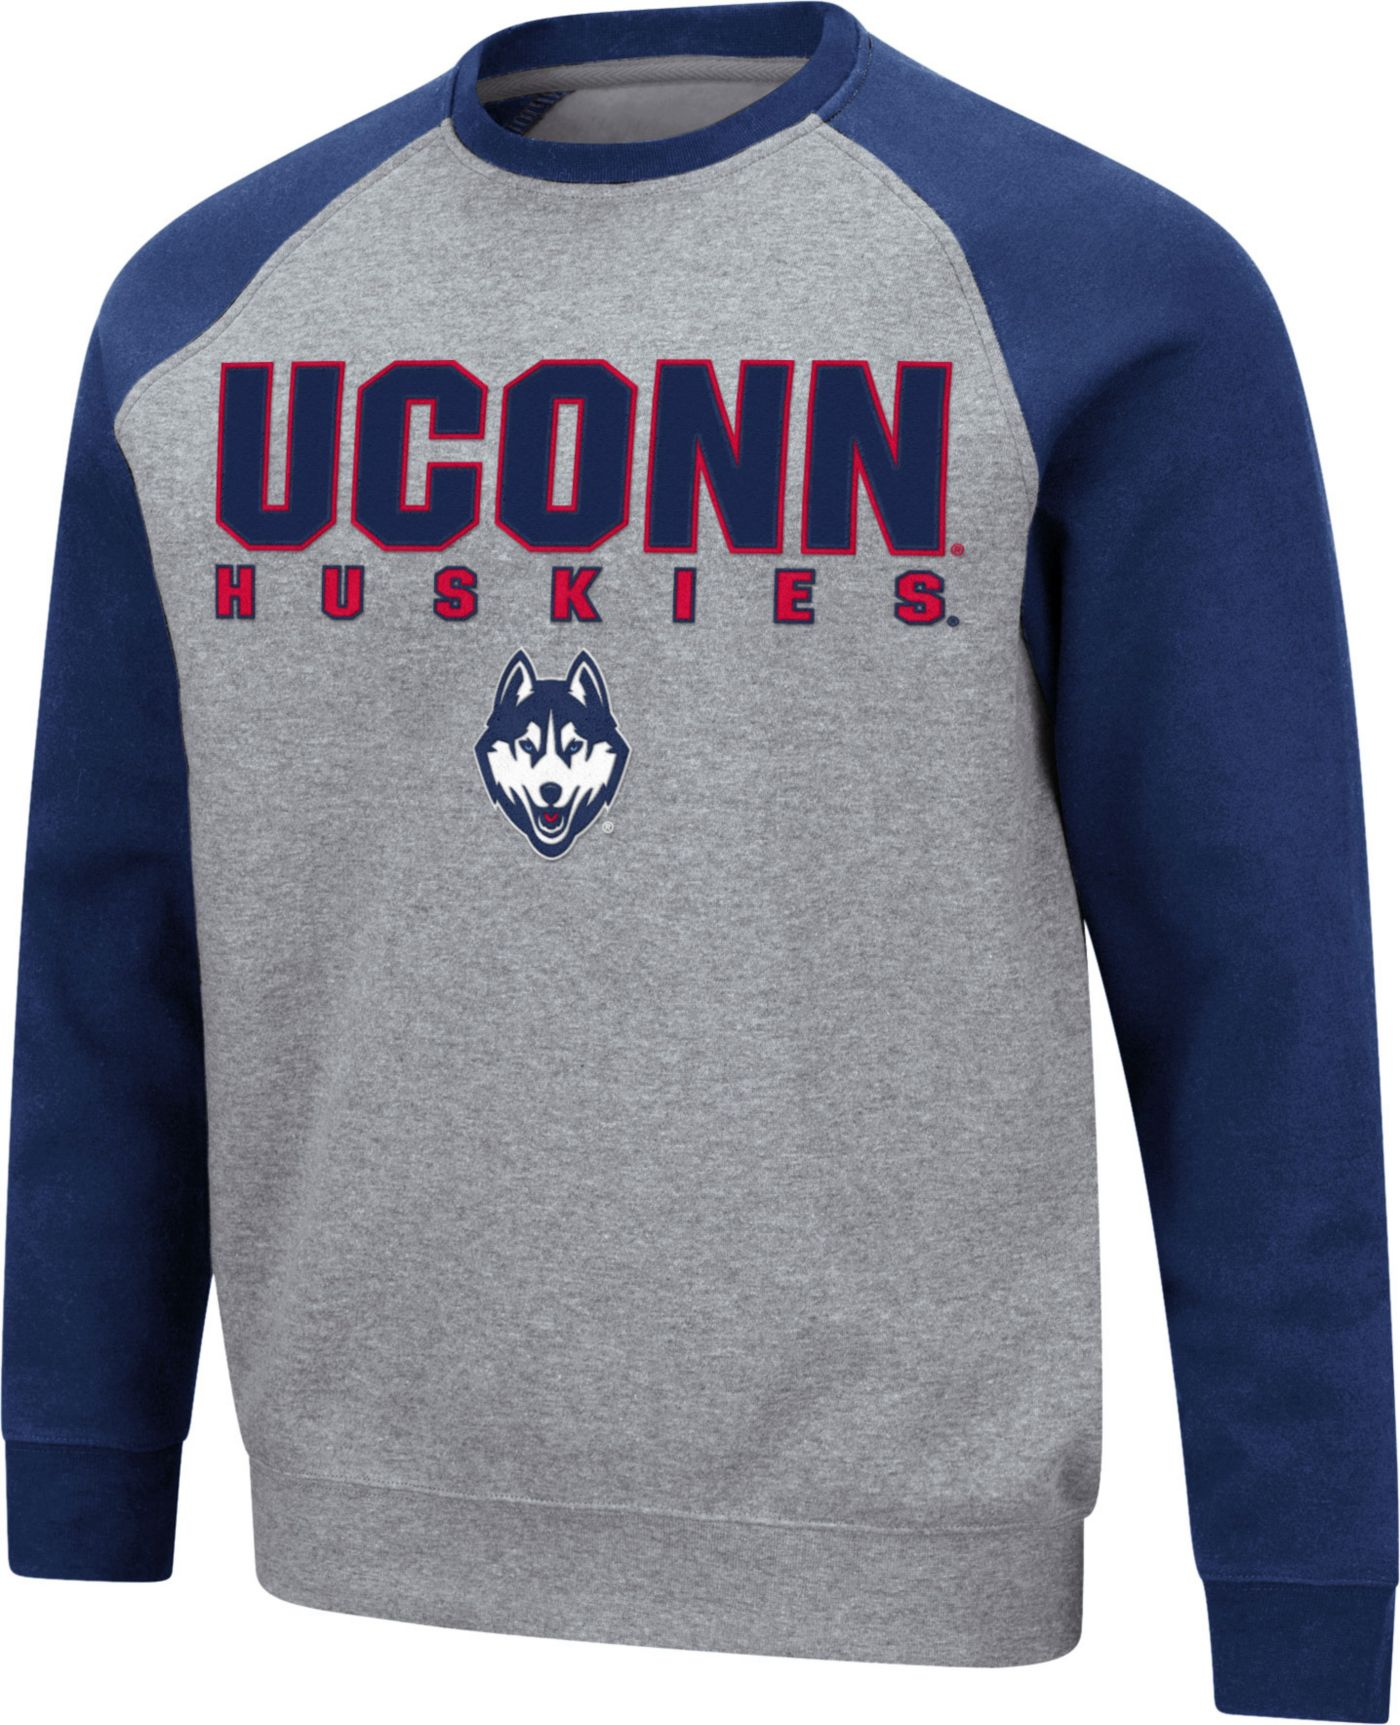 Colosseum Men's UConn Huskies Grey Raglan Pullover Sweatshirt